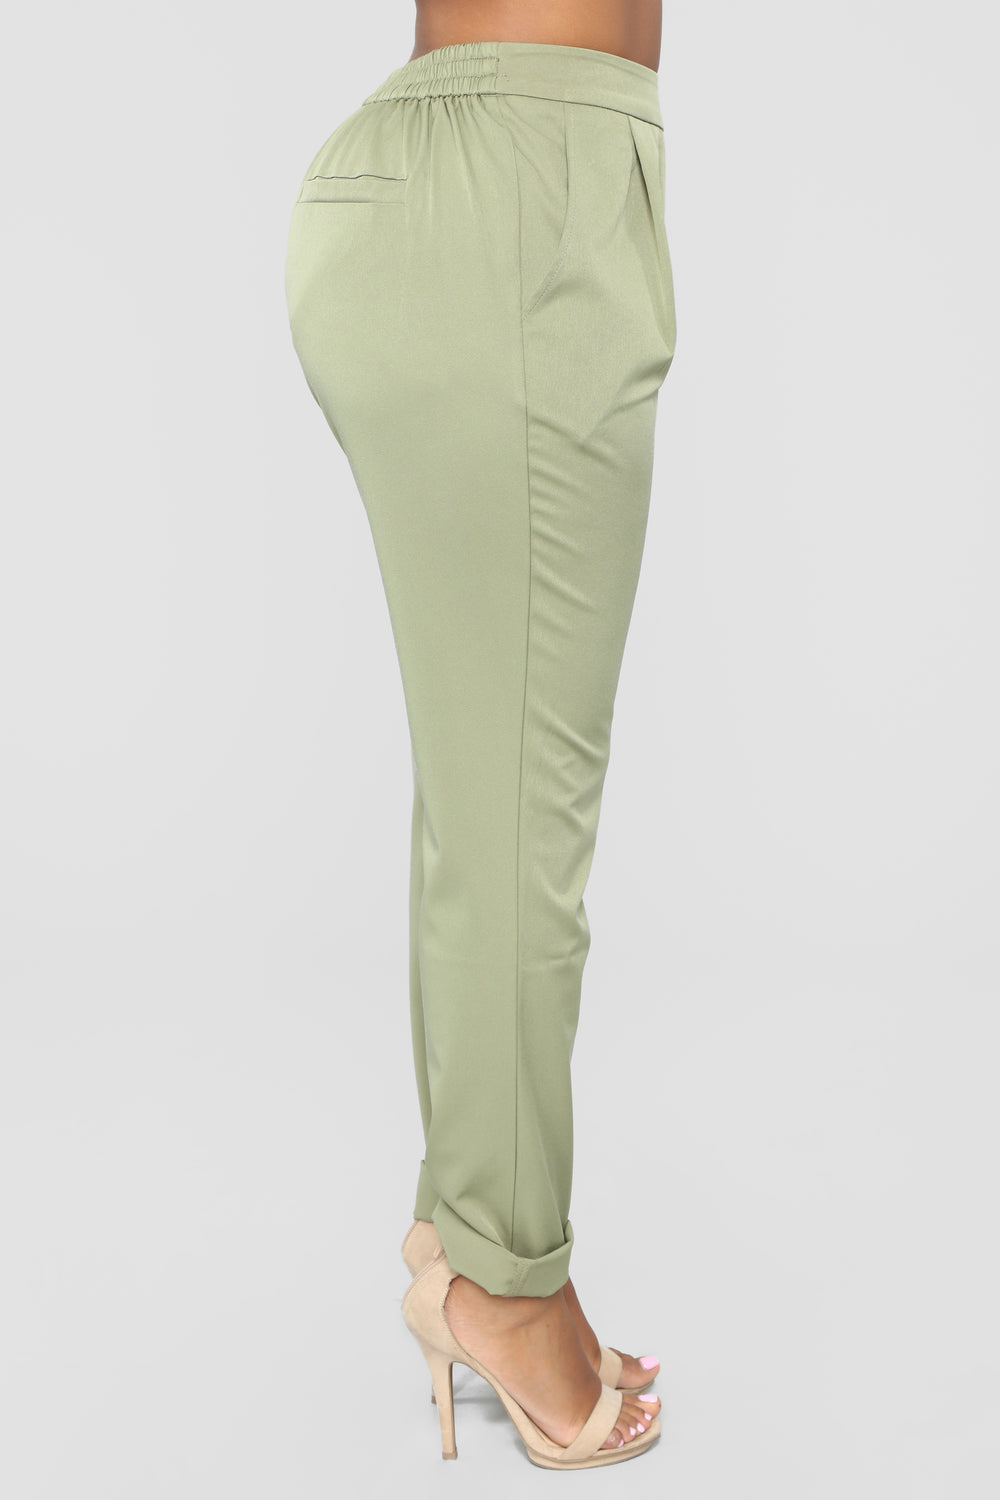 Audrina Cuffed Pants - Olive